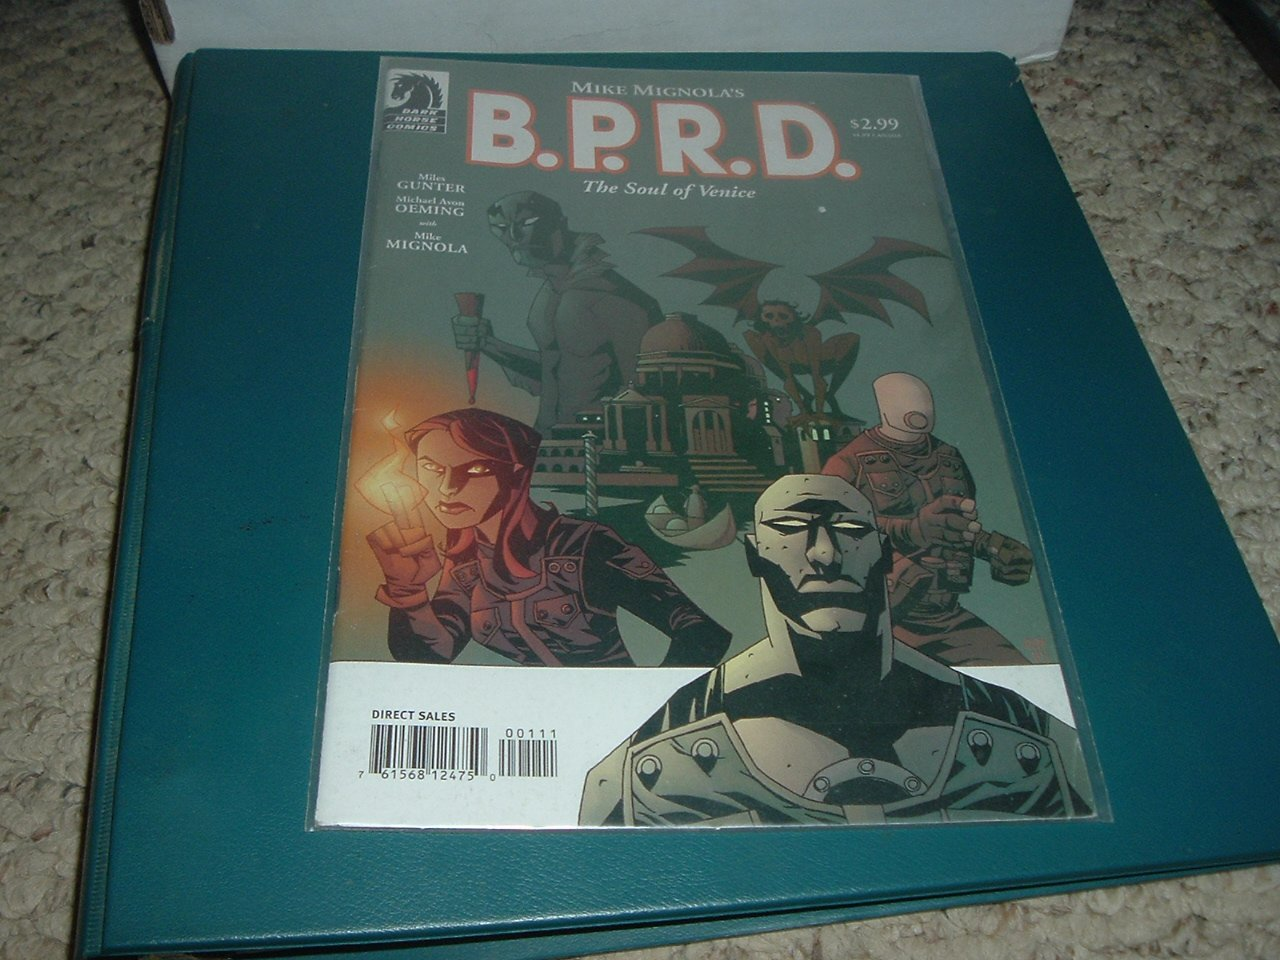 B.P.R.D.: The Soul of Venice 1-shot Special (Dark Horse Comics, Mignola BPRD) First Print, For Sale